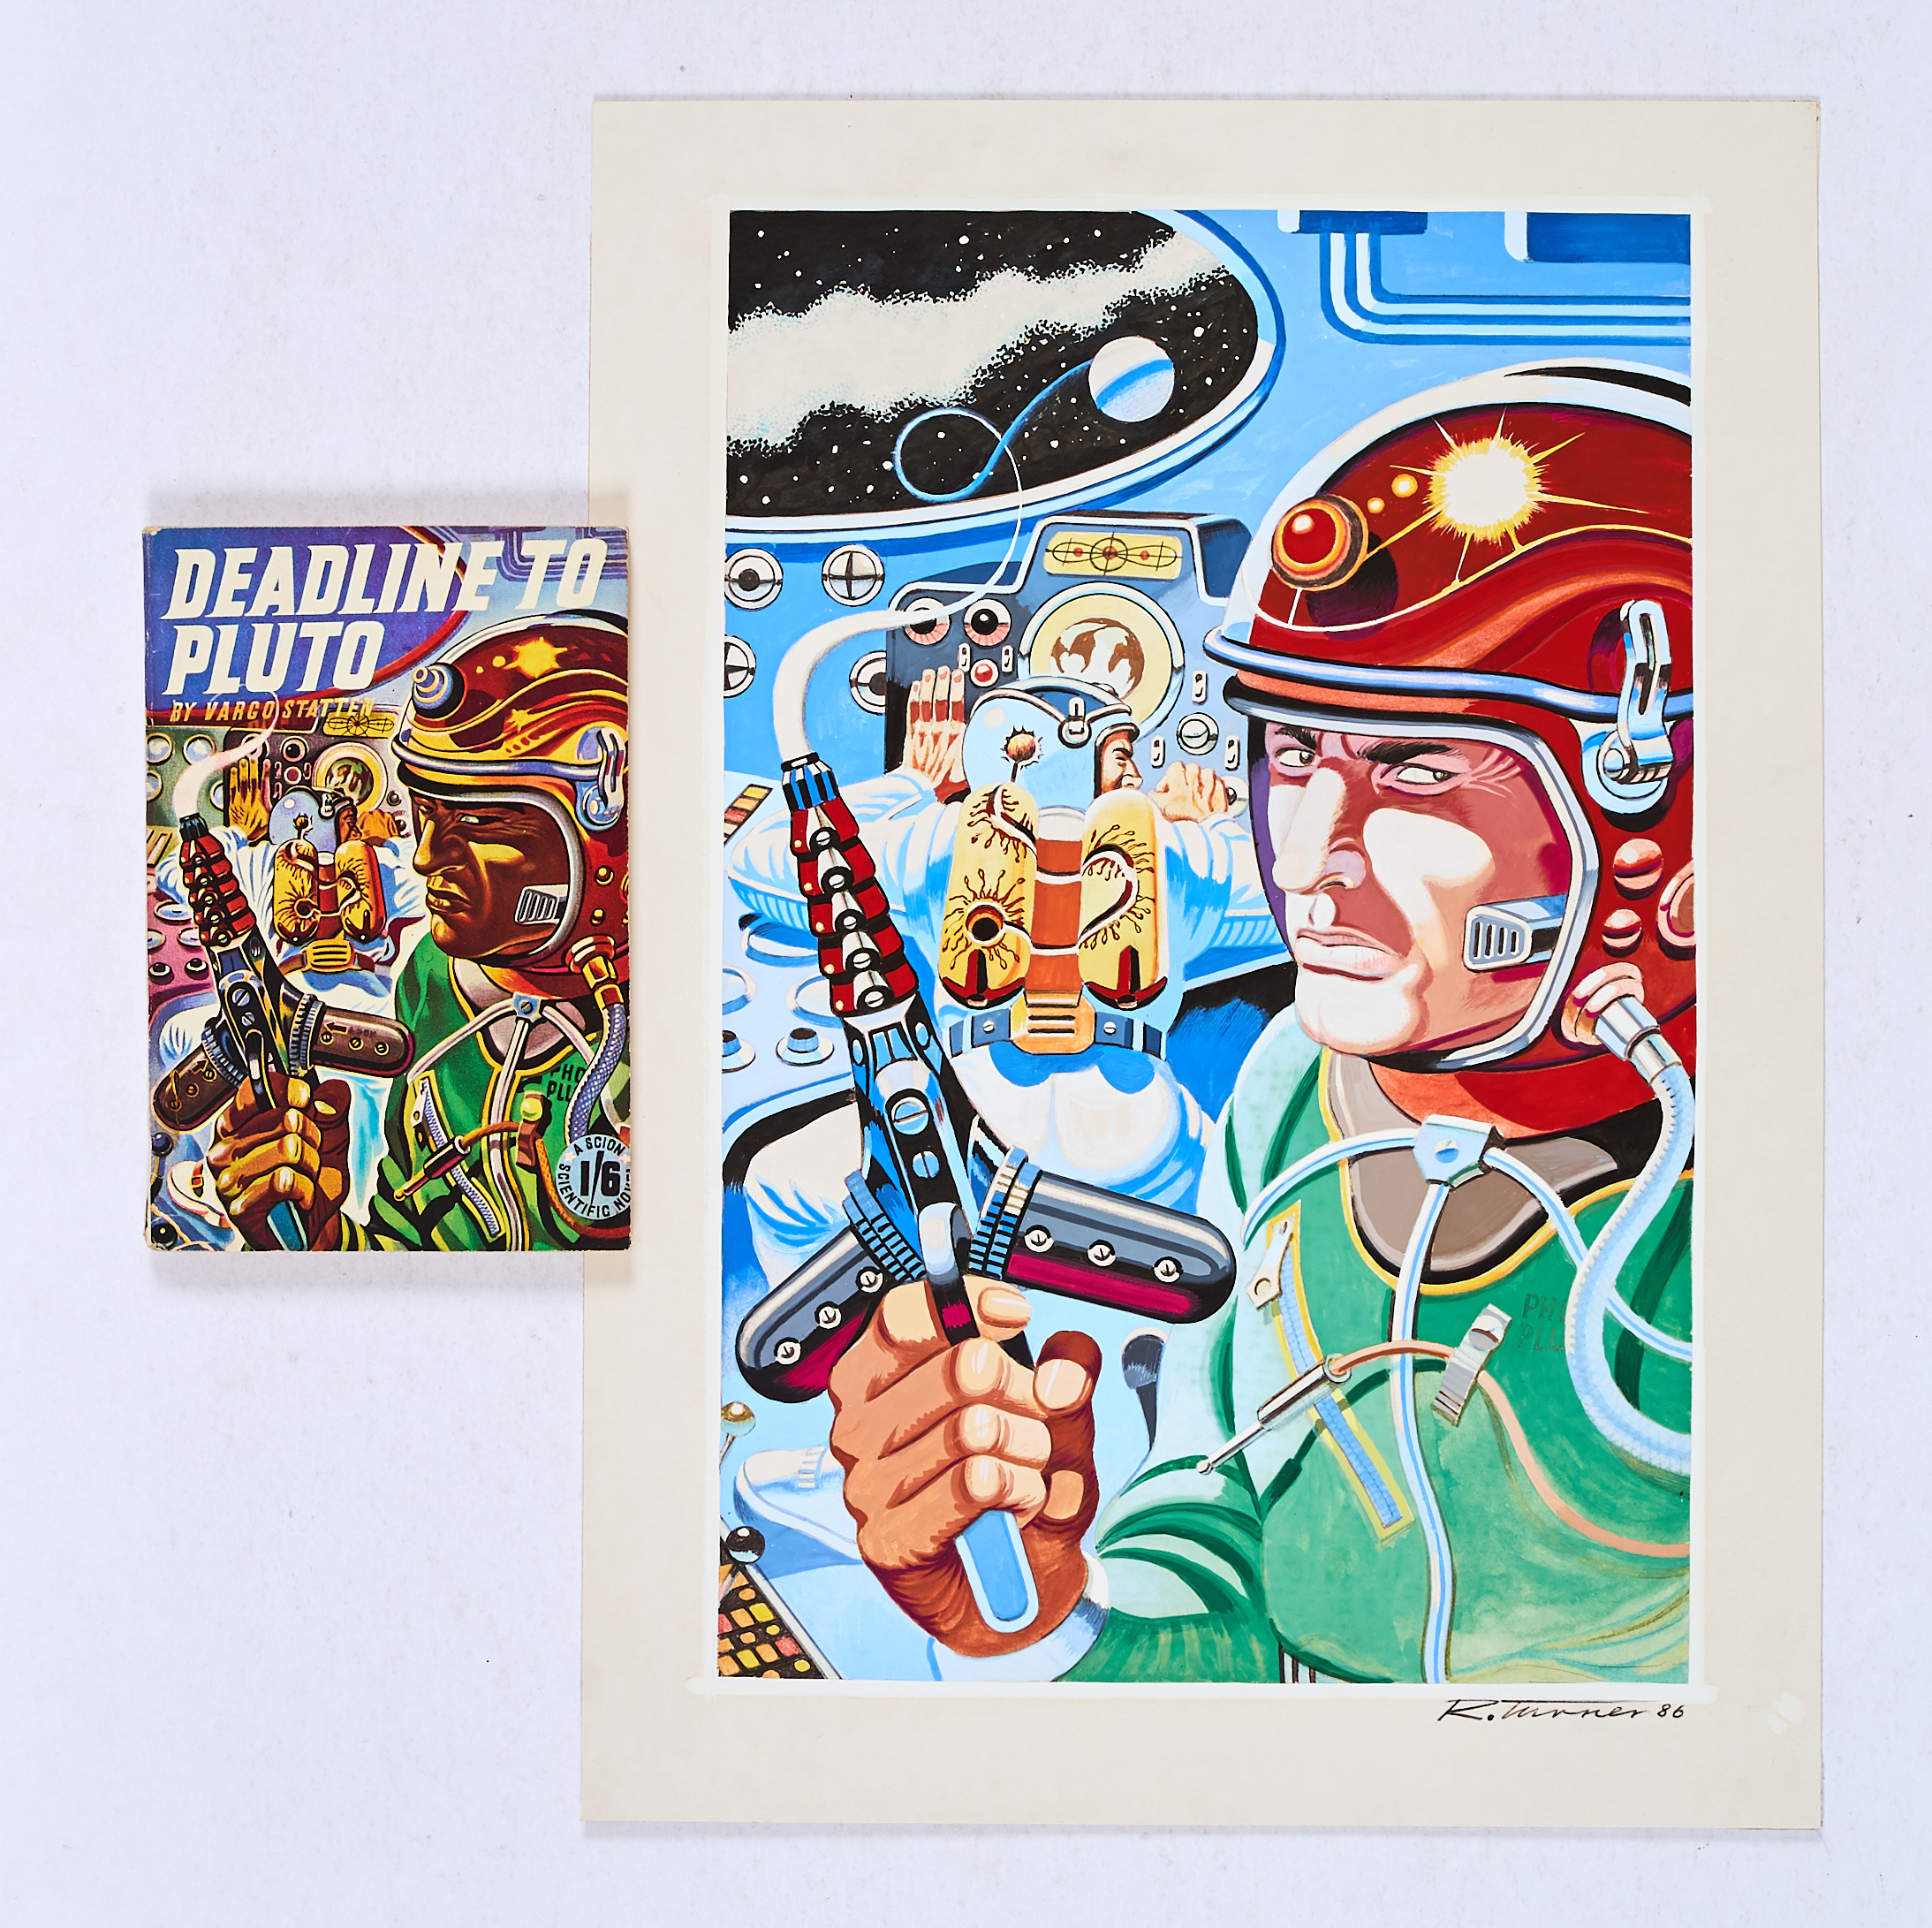 Lot 121 - Vargo Statten re-creation artwork (1986) dated and signed by Ron Turner. Ron Turner re-creates his